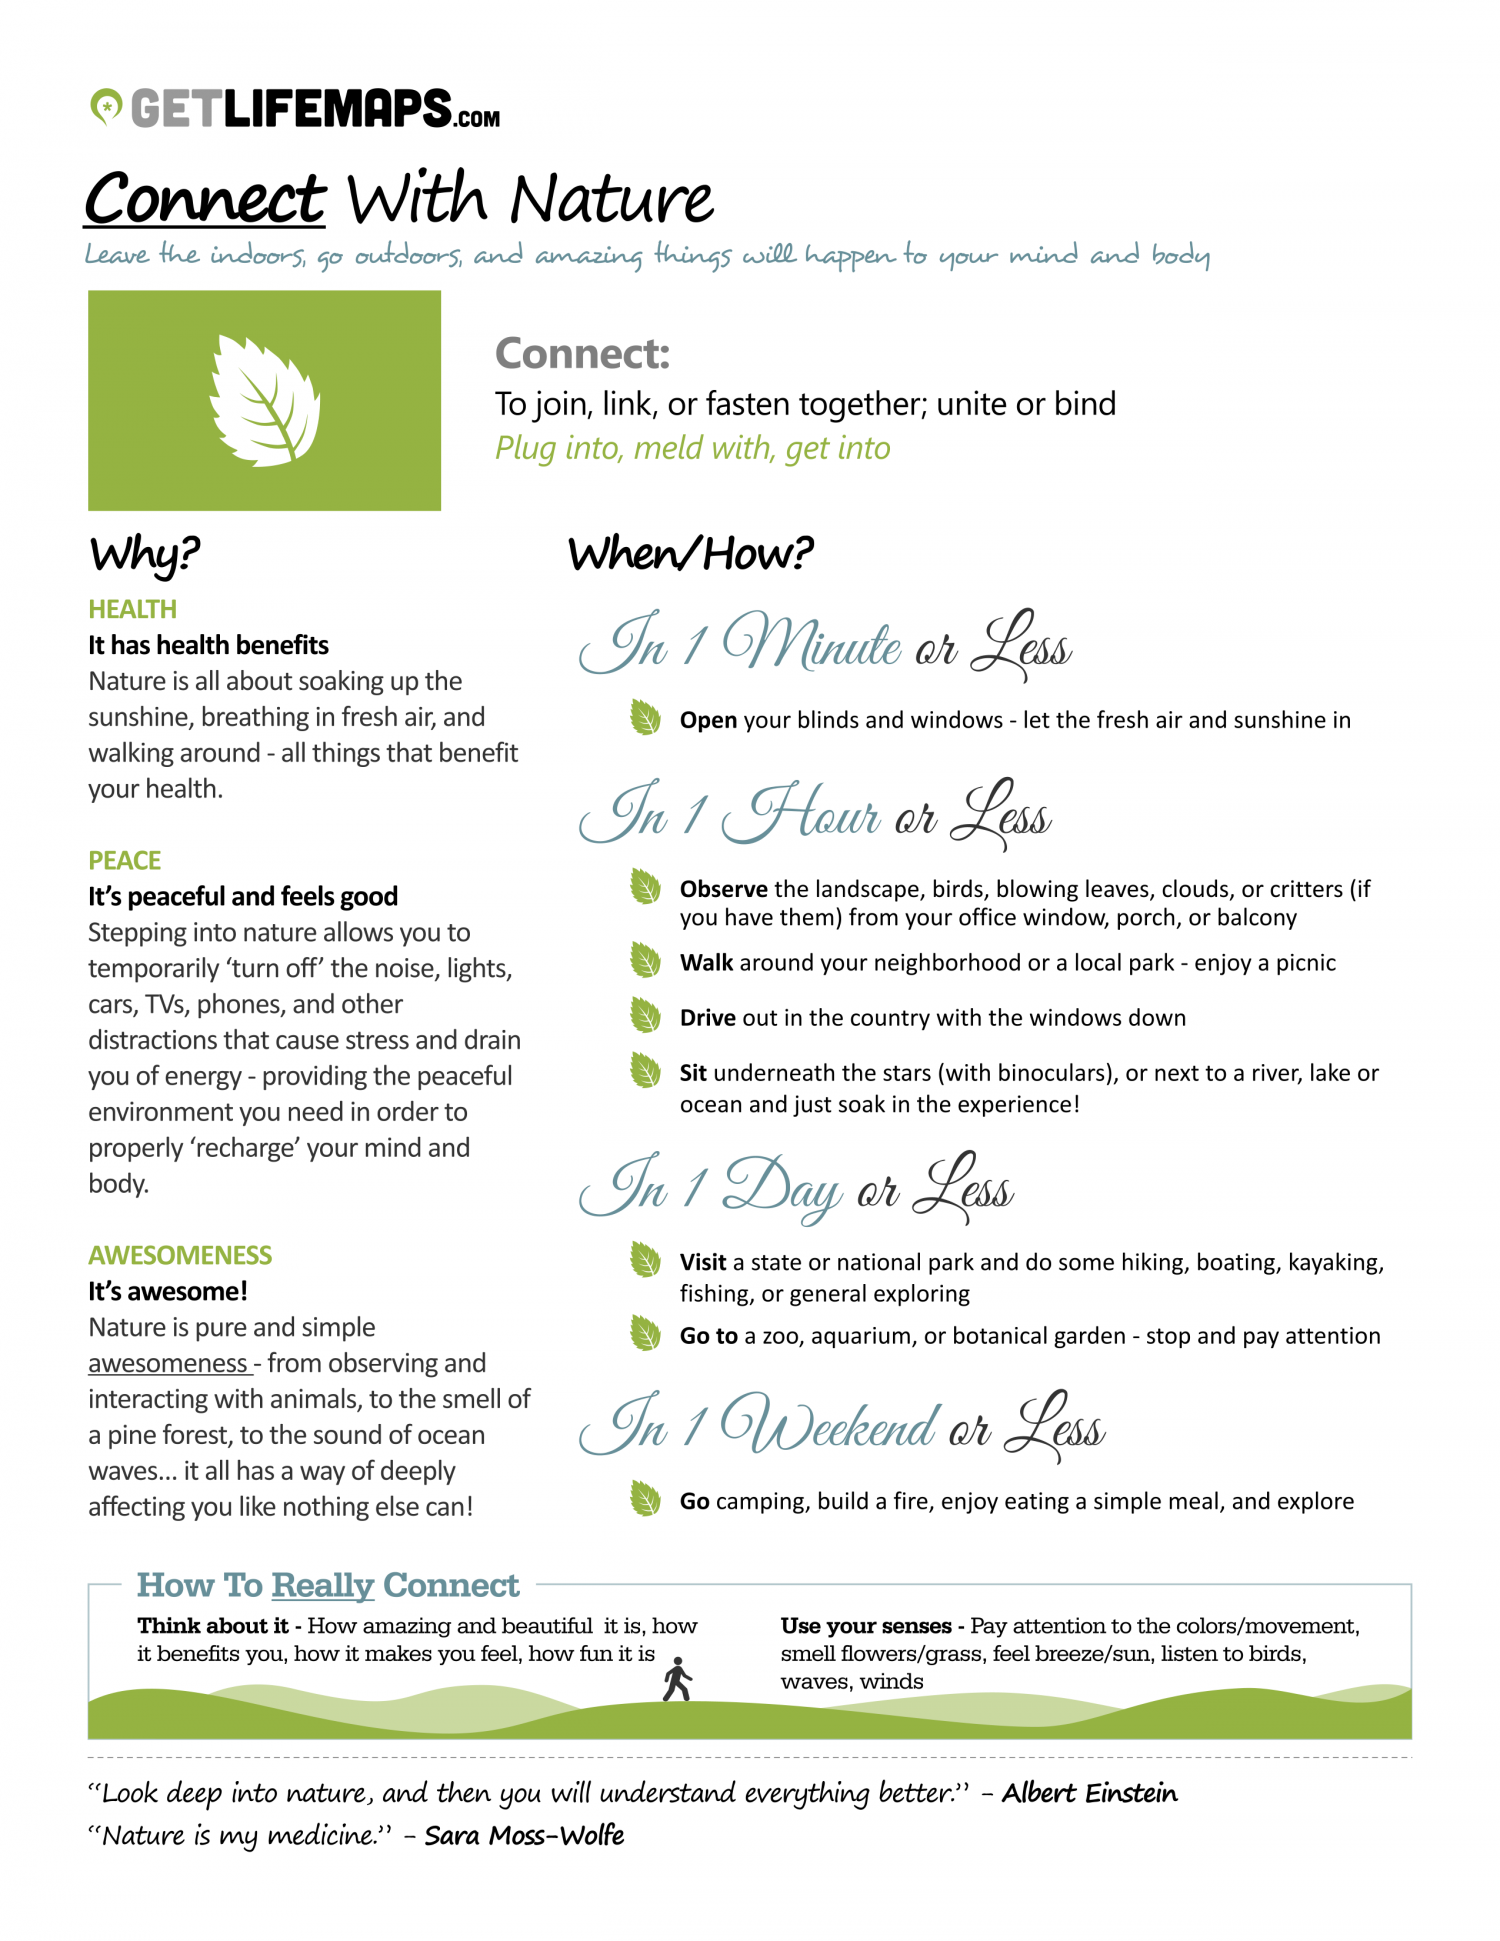 3 Reasons To Connect With Nature And 8 Ways To Do It Infographic